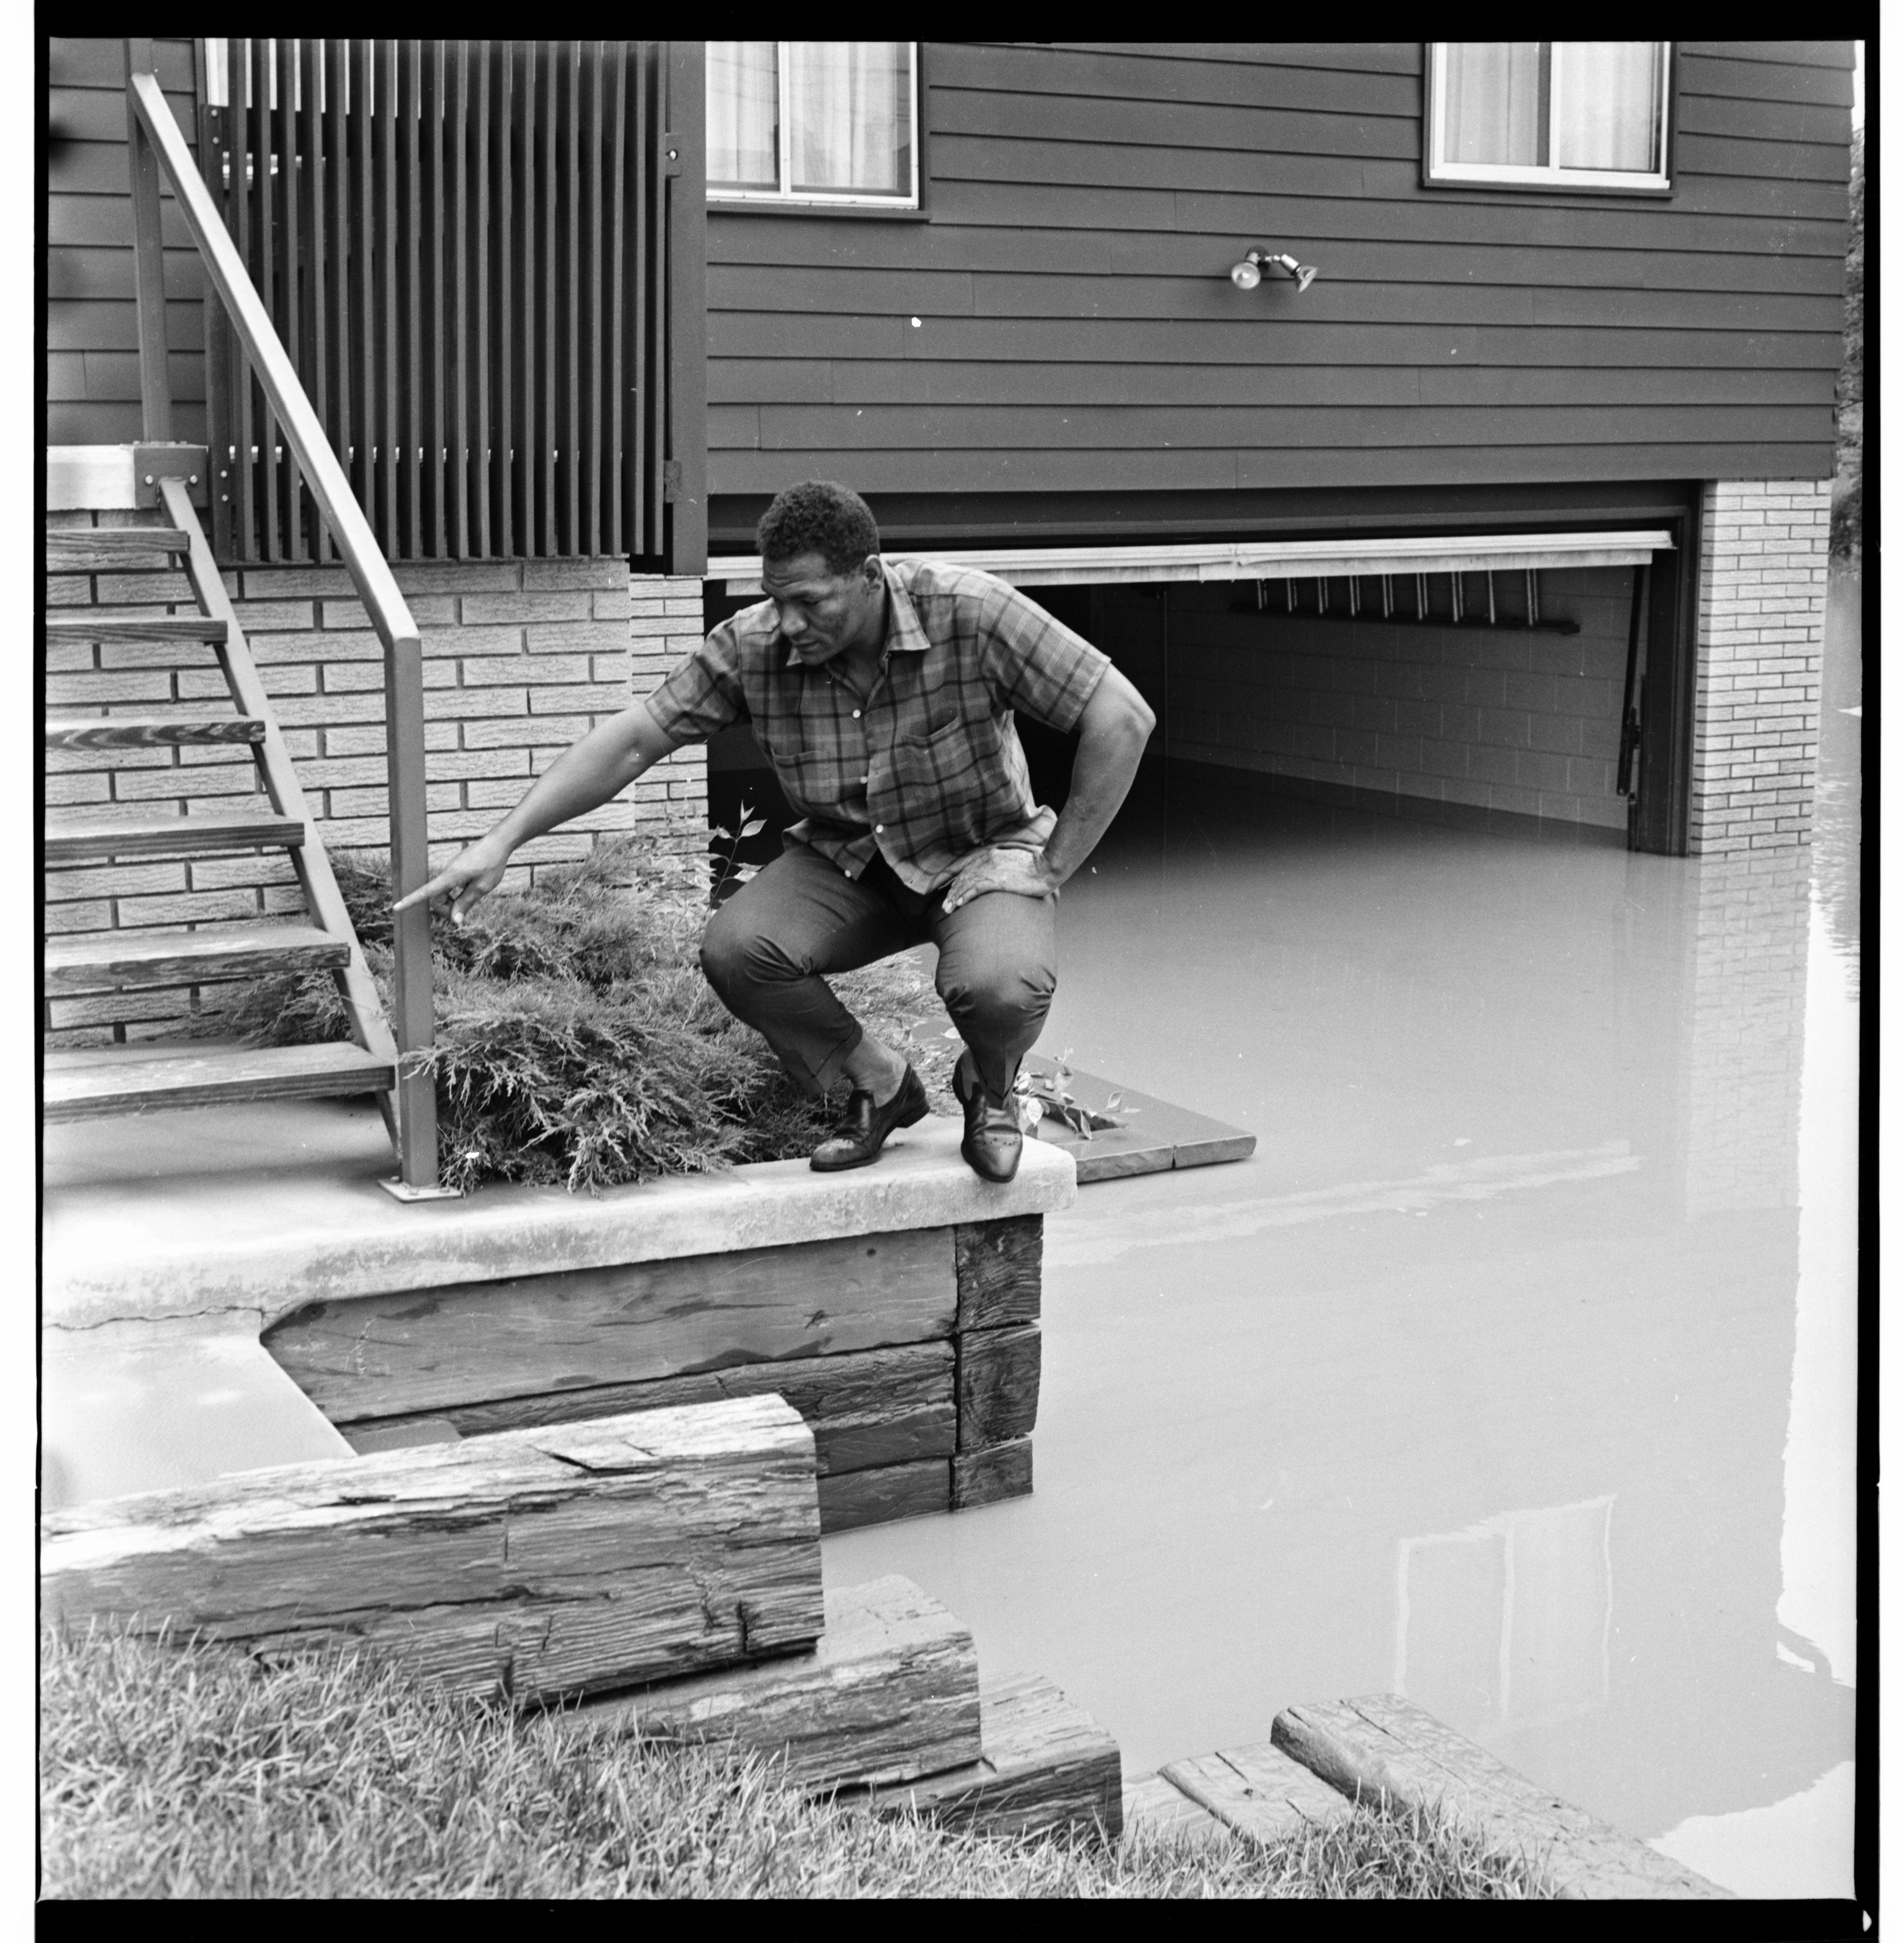 High Water Mark and Flooded Garage, June 1968 Flood image